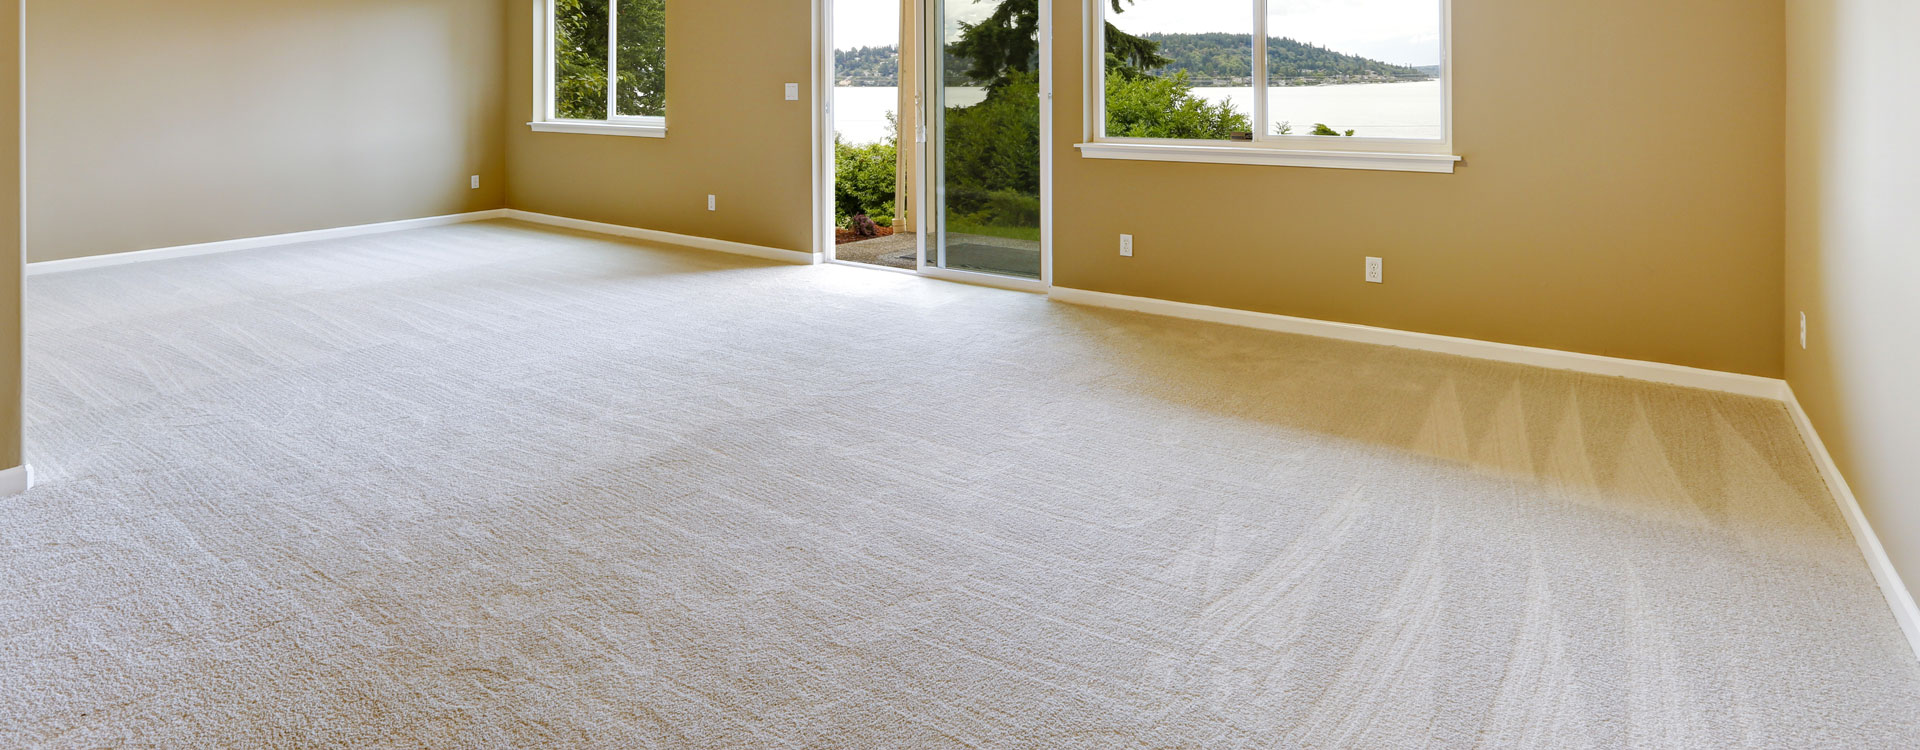 residential-carpet-cleaning-company-nh